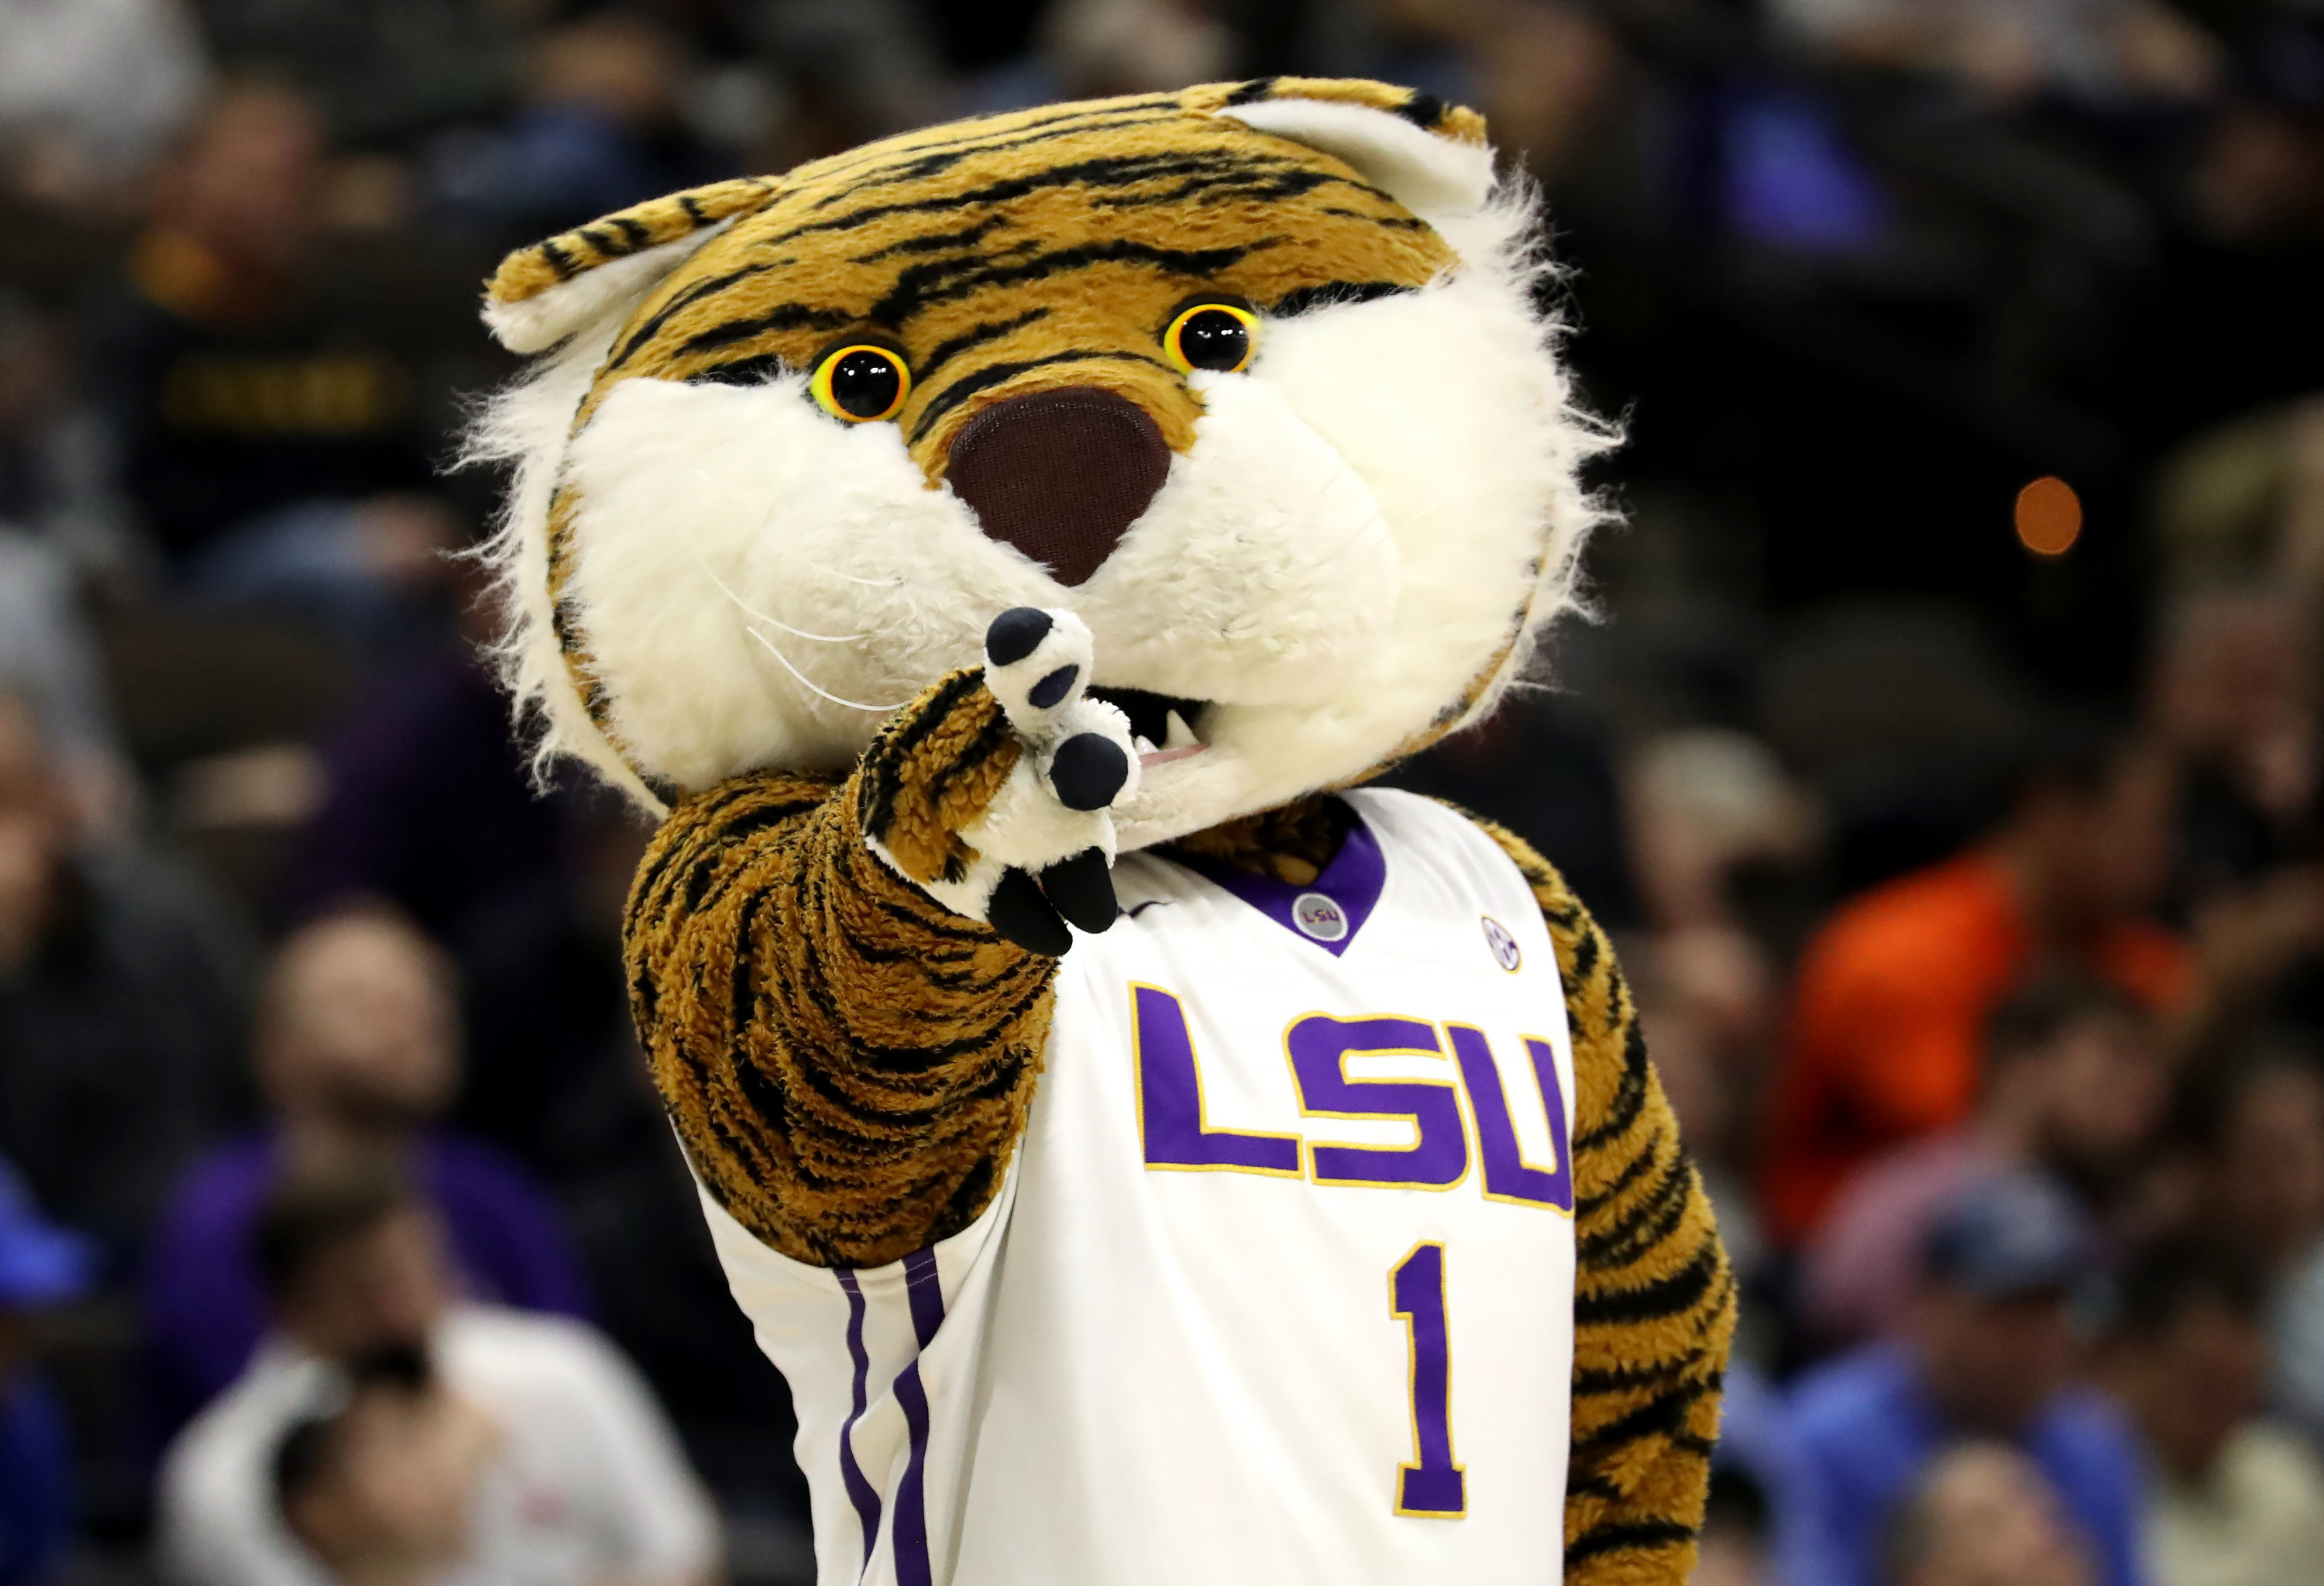 Tiger mascot in LSU basketball jersey pointing.